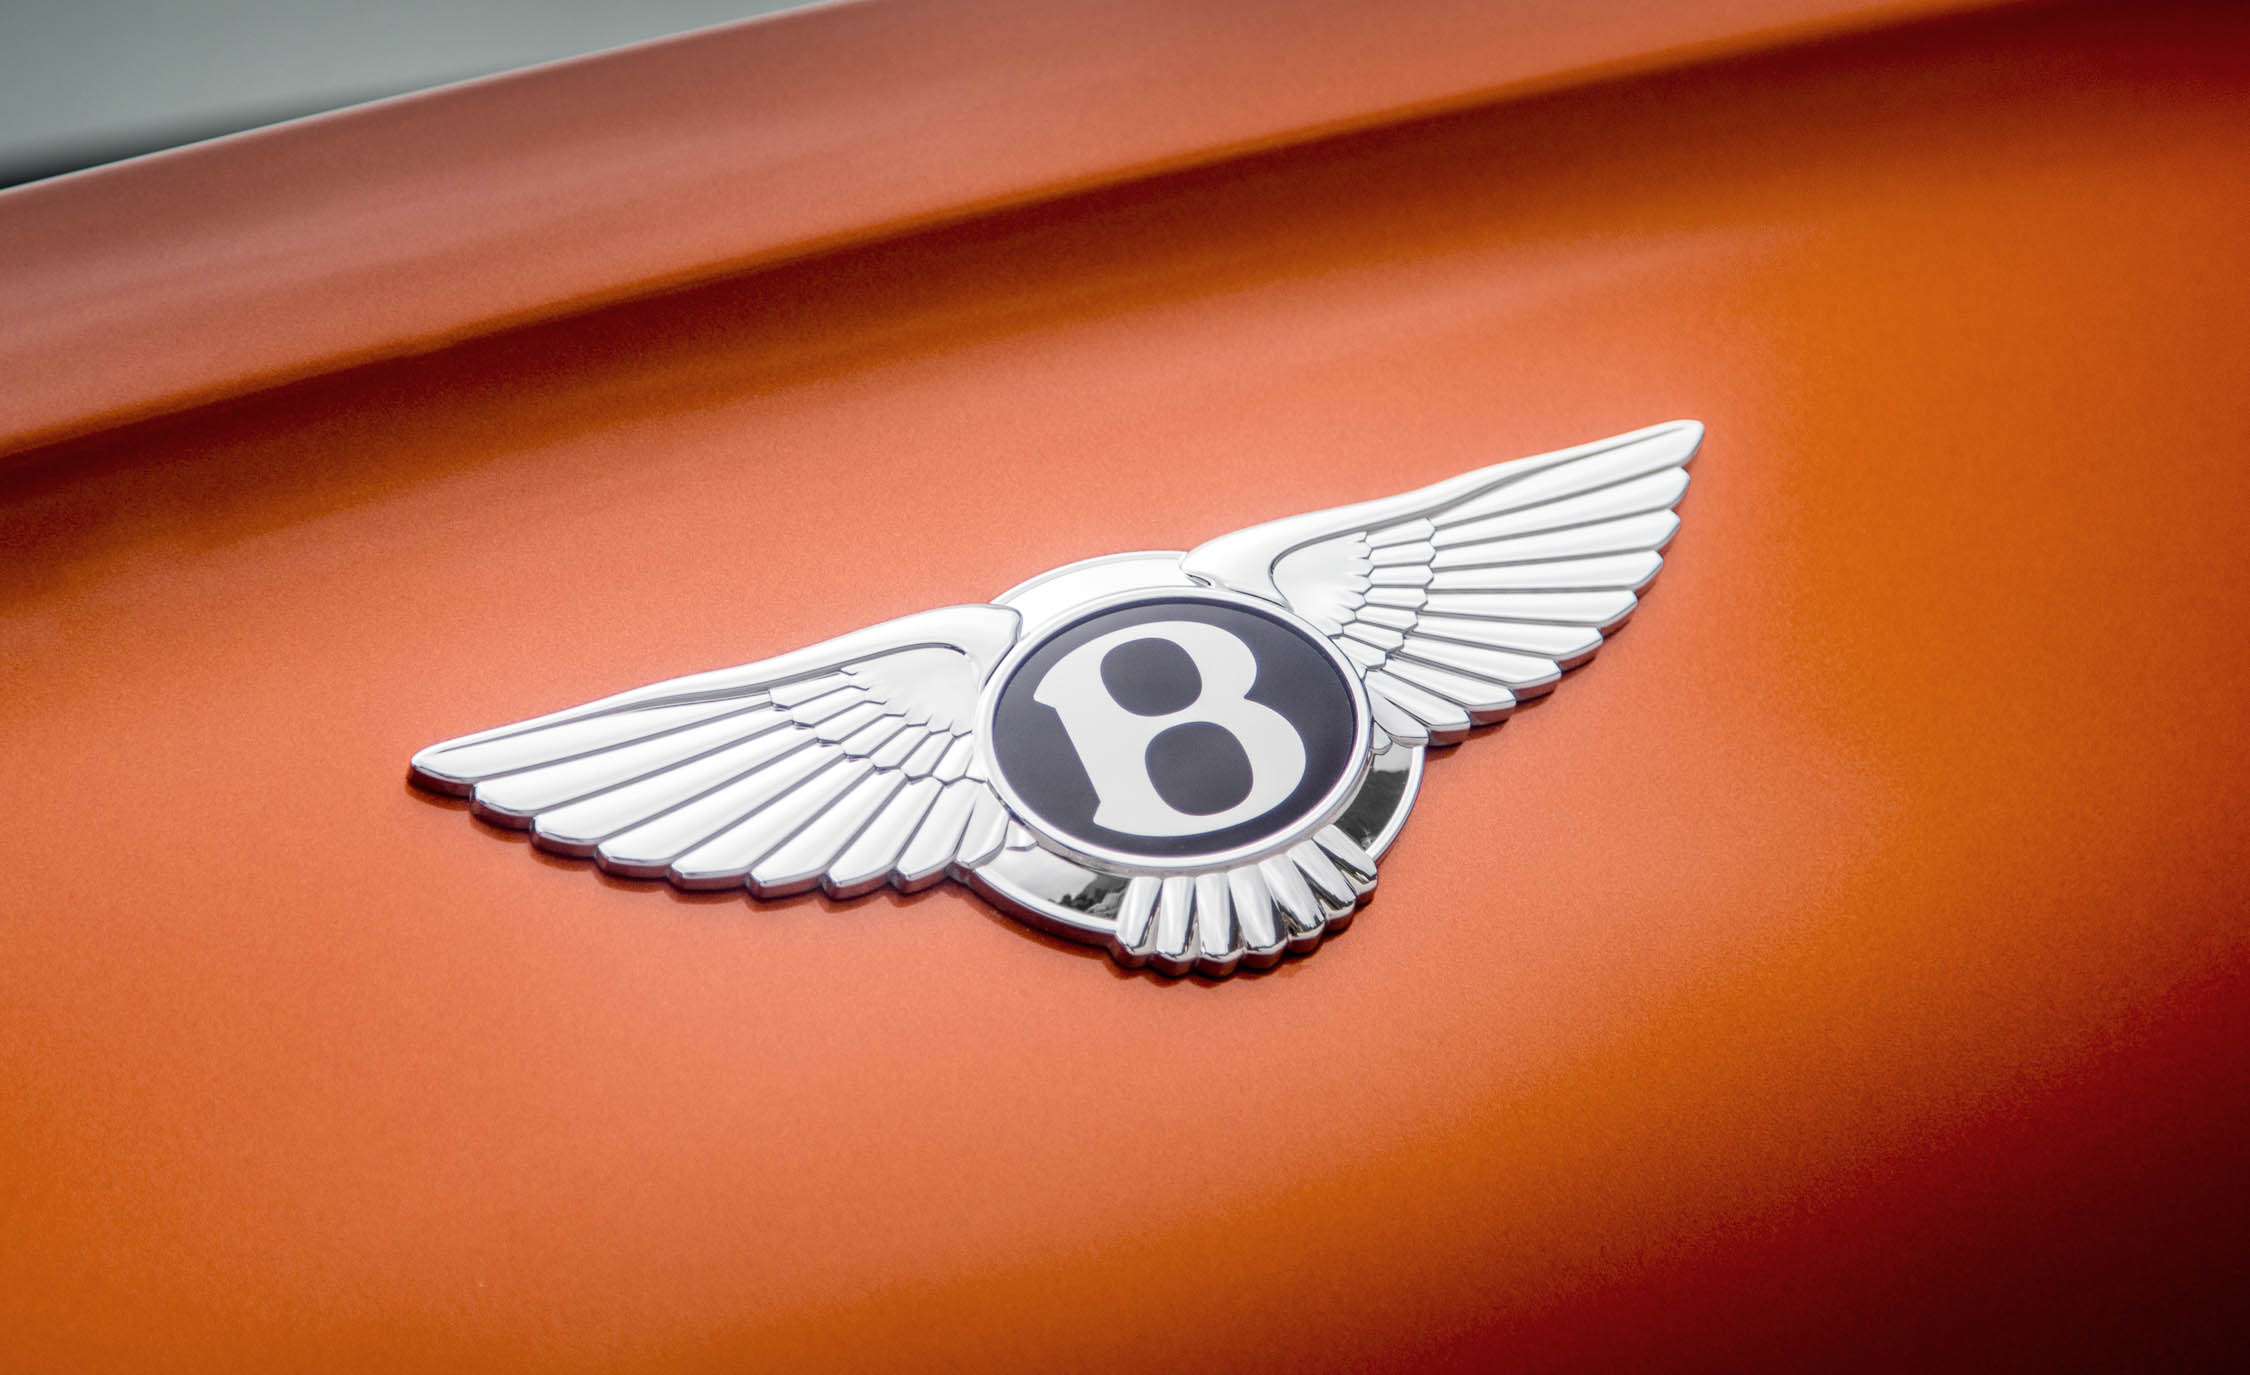 2018 Bentley Continental Supersports Convertible Exterior View Rear Badge (View 62 of 66)